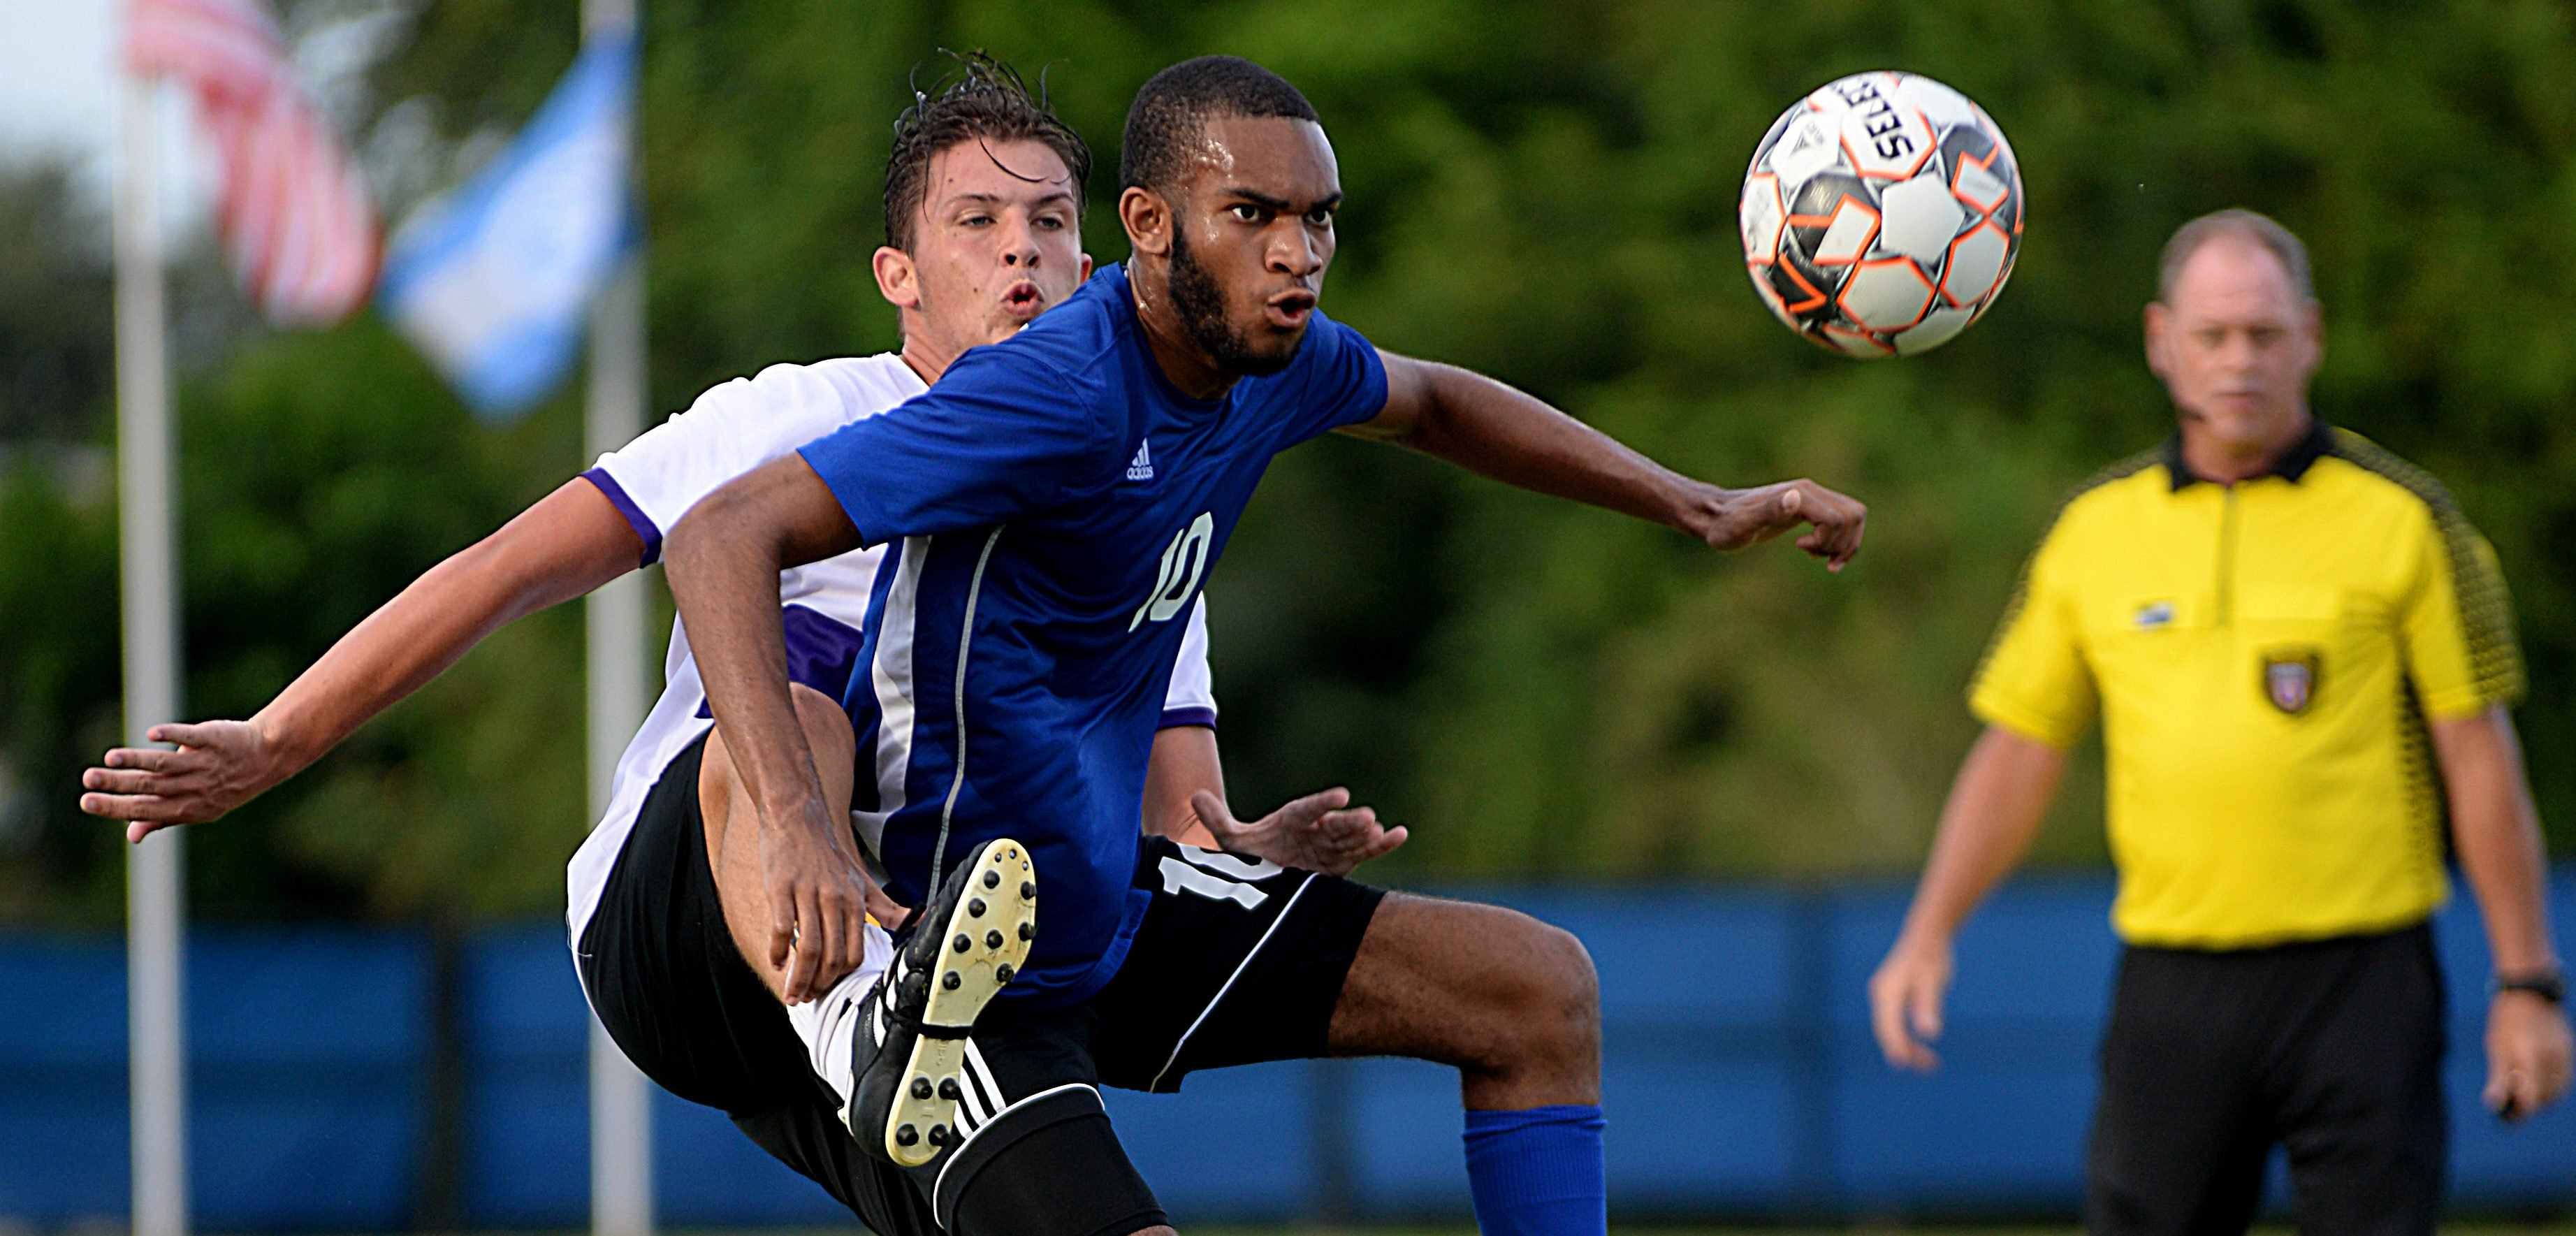 UB Mingoes soccer side drops two matches in Daytona Beach